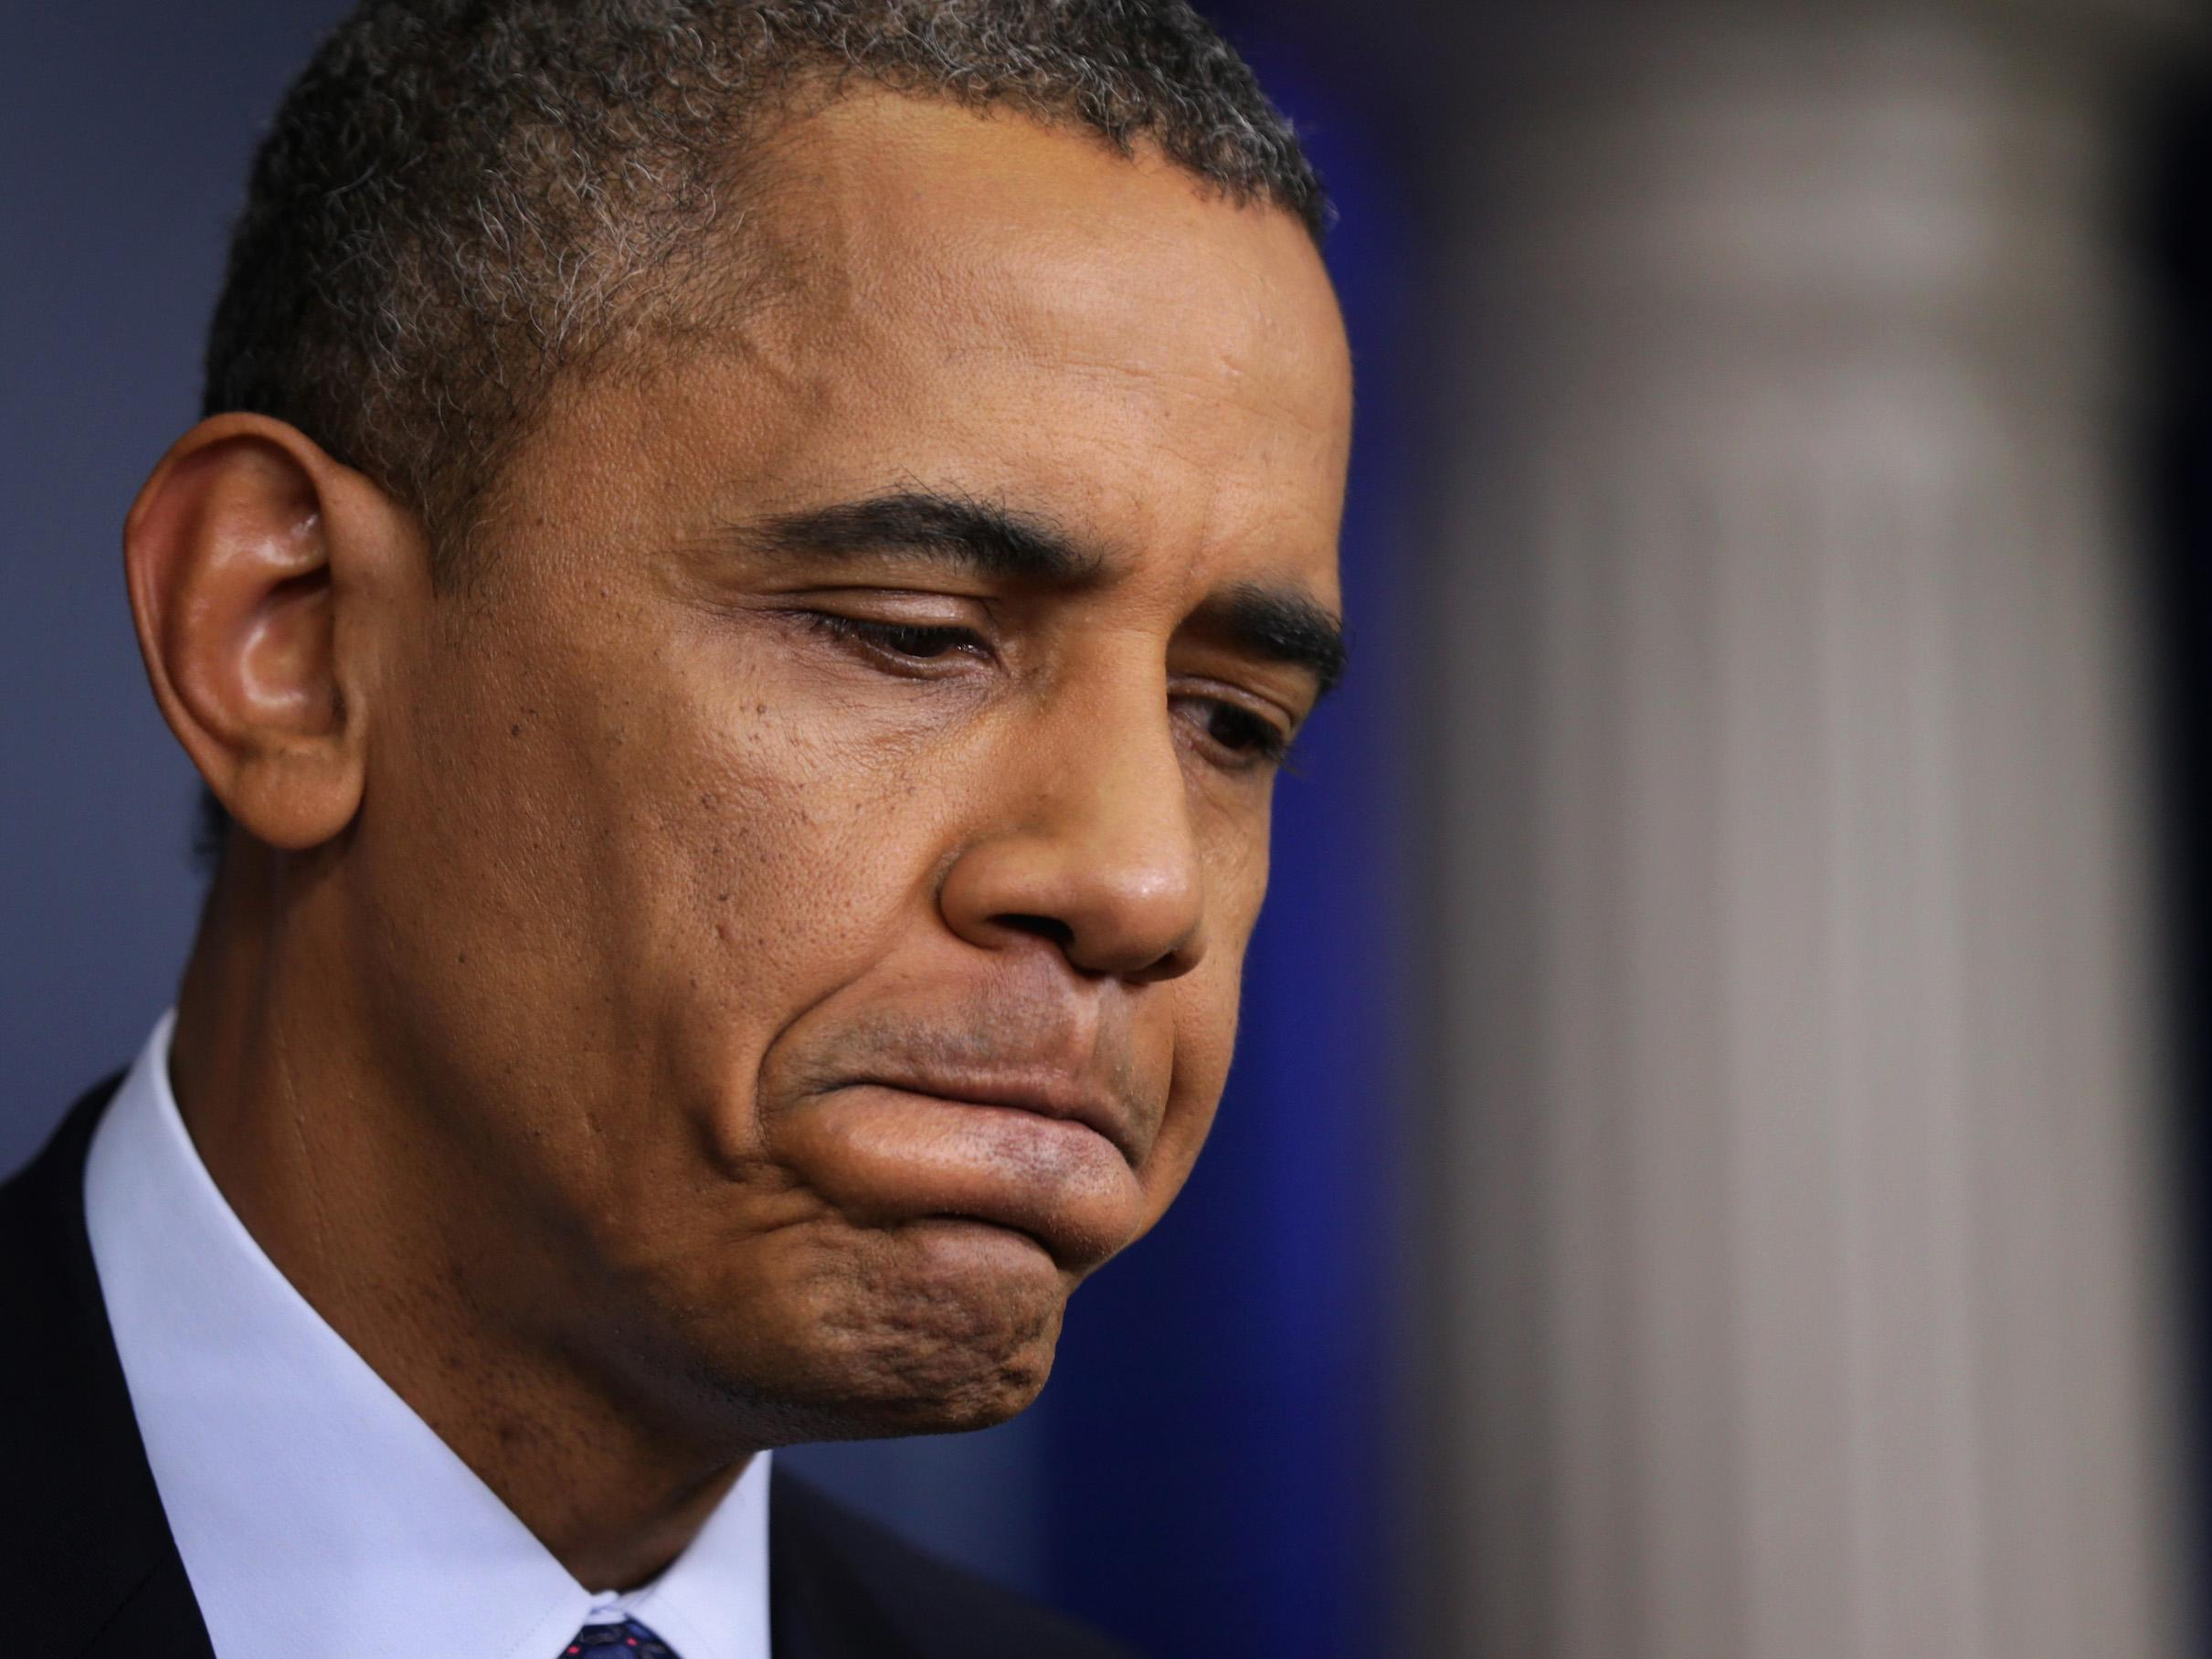 Here's how much debt the US government added under President Obama